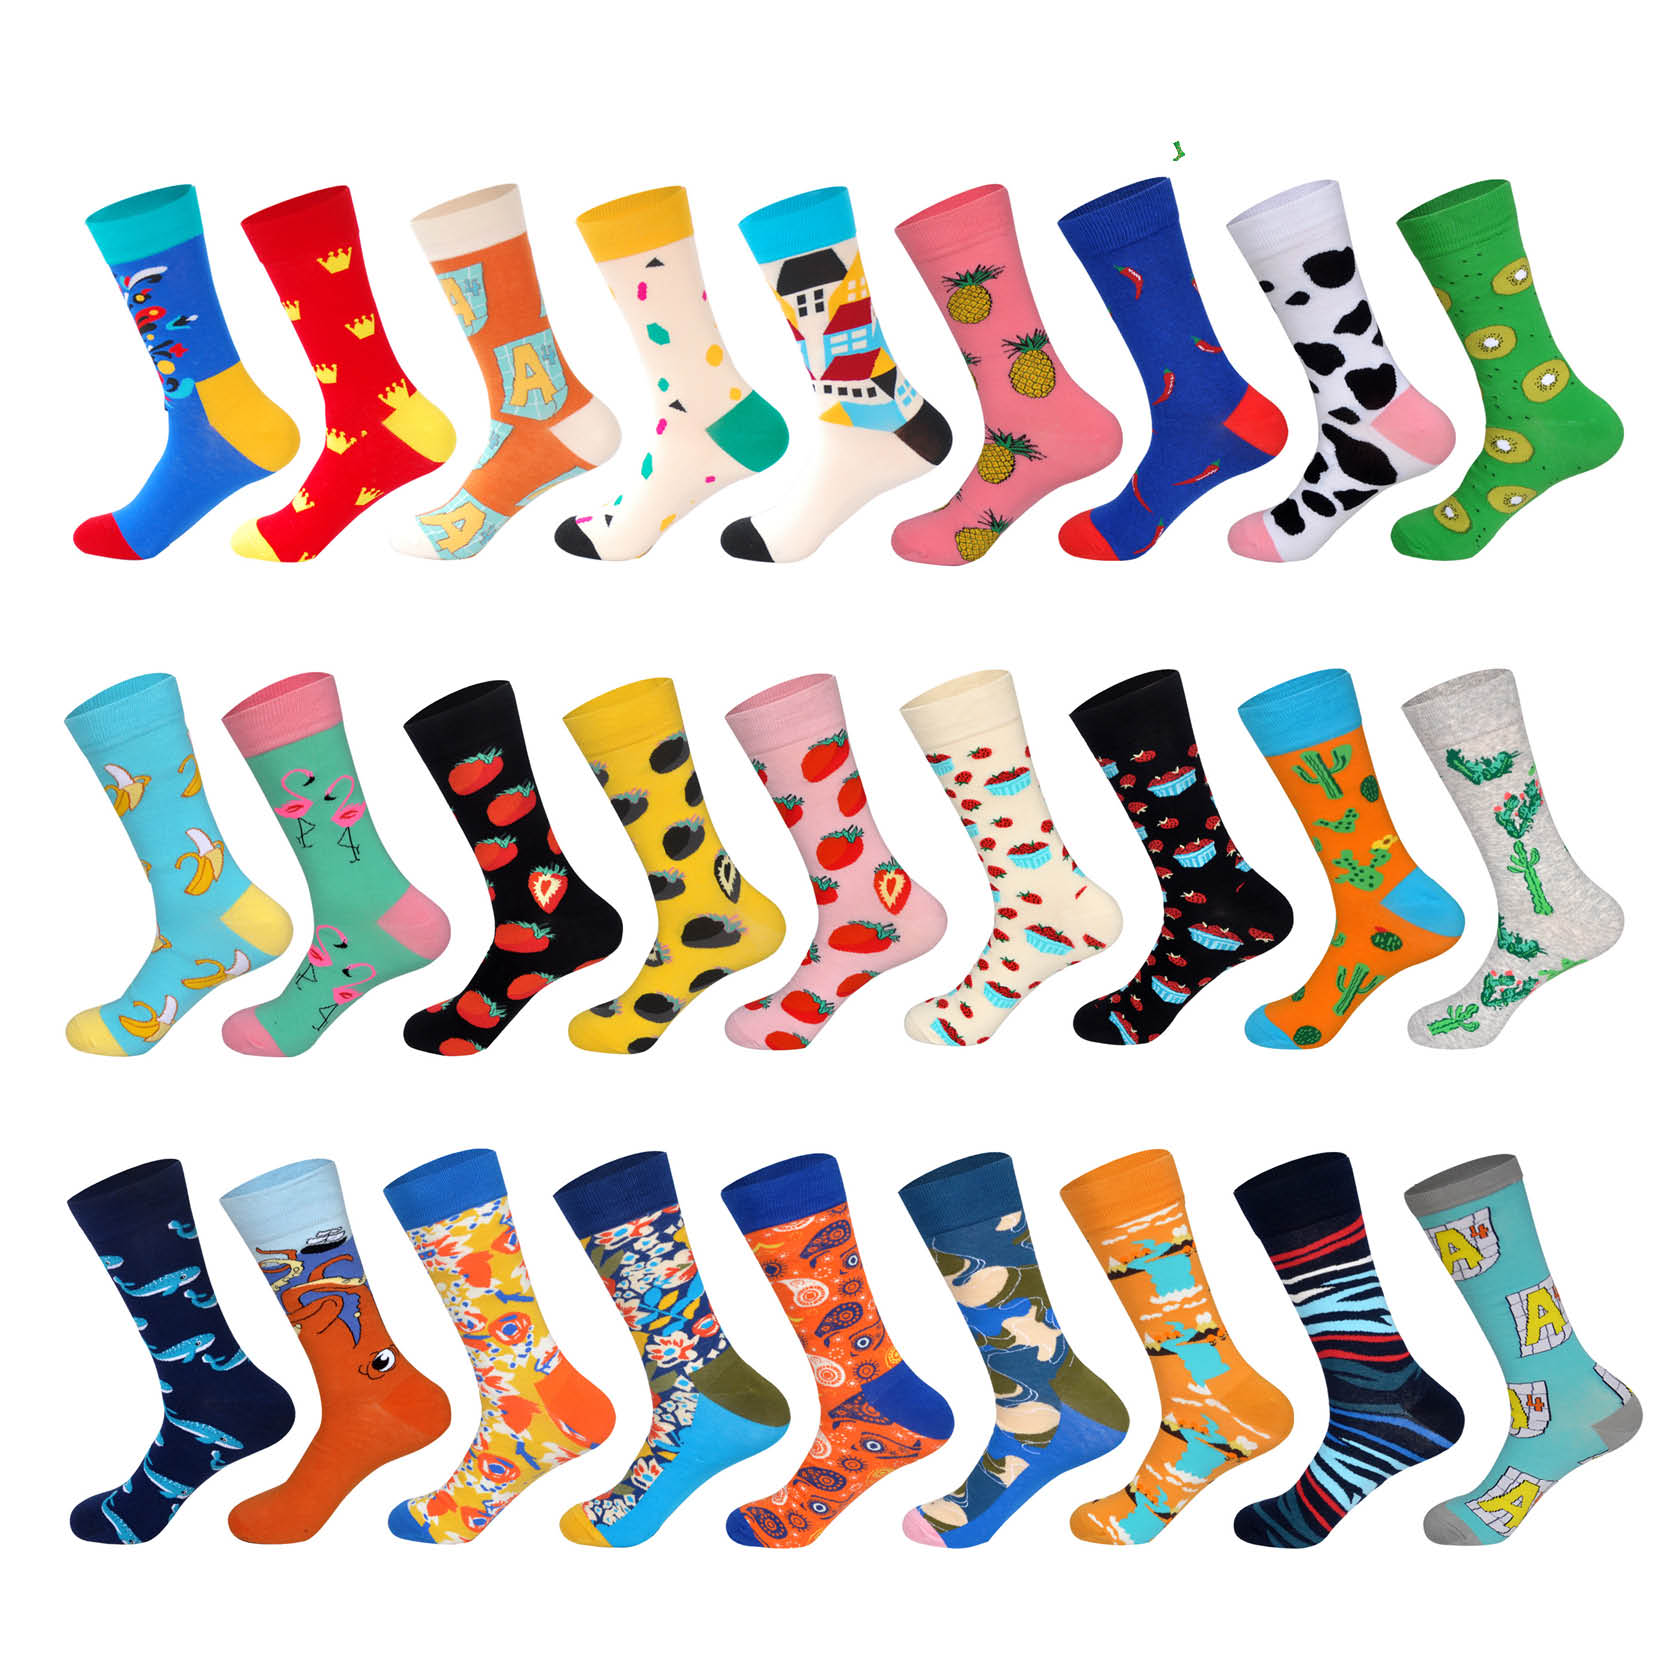 LIONZONE  Men Cotton Colorful Pepper Banana Strawberry Kiwi Fruit Pineapple Letter Cactus Whale Octopus Male Socks Men Gift